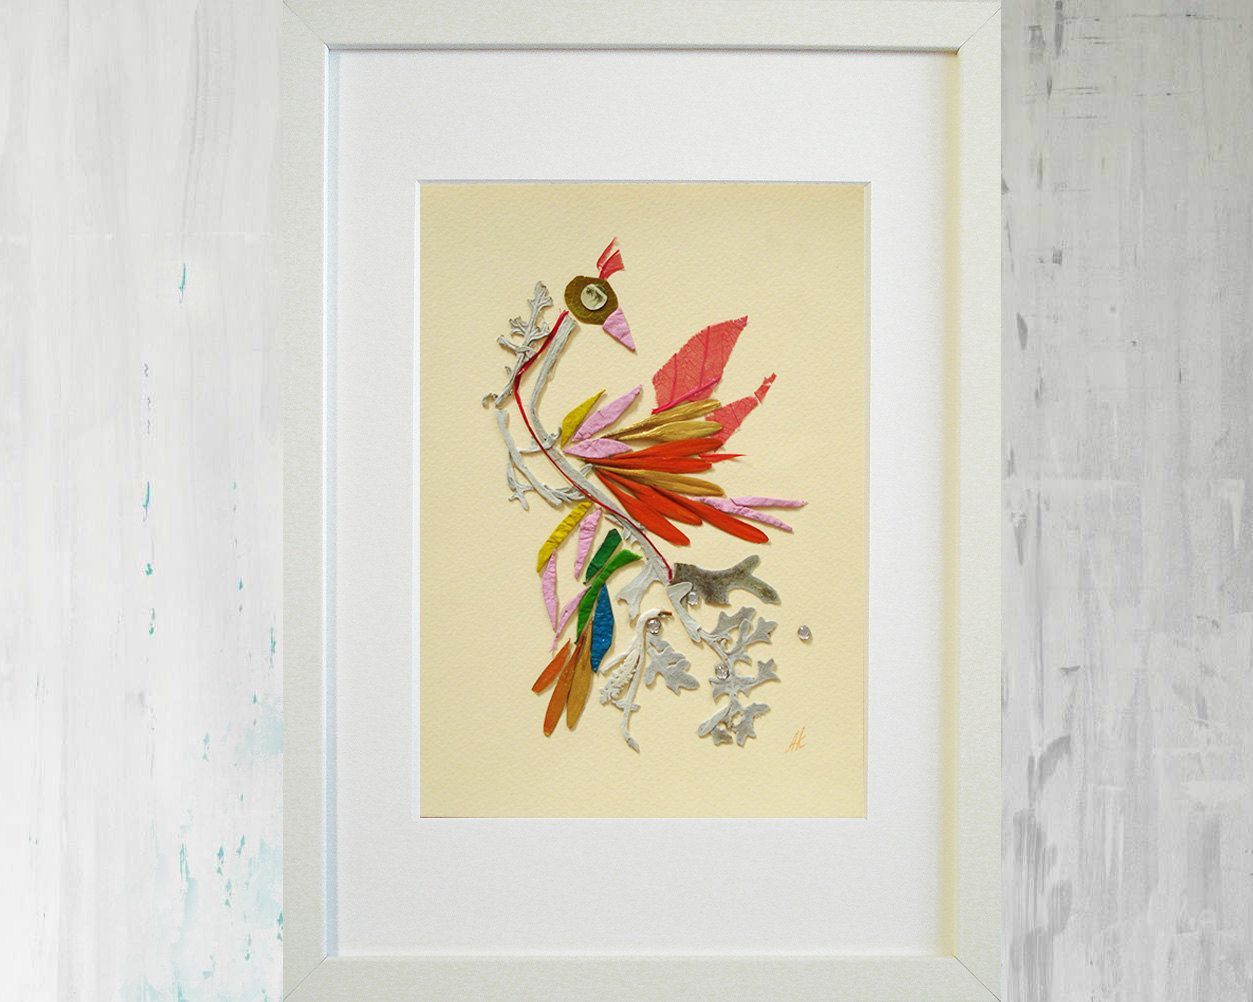 Dried Flowers Art Bird Original Botanical Artwork Mixed Media Collage Framed Decorative Living